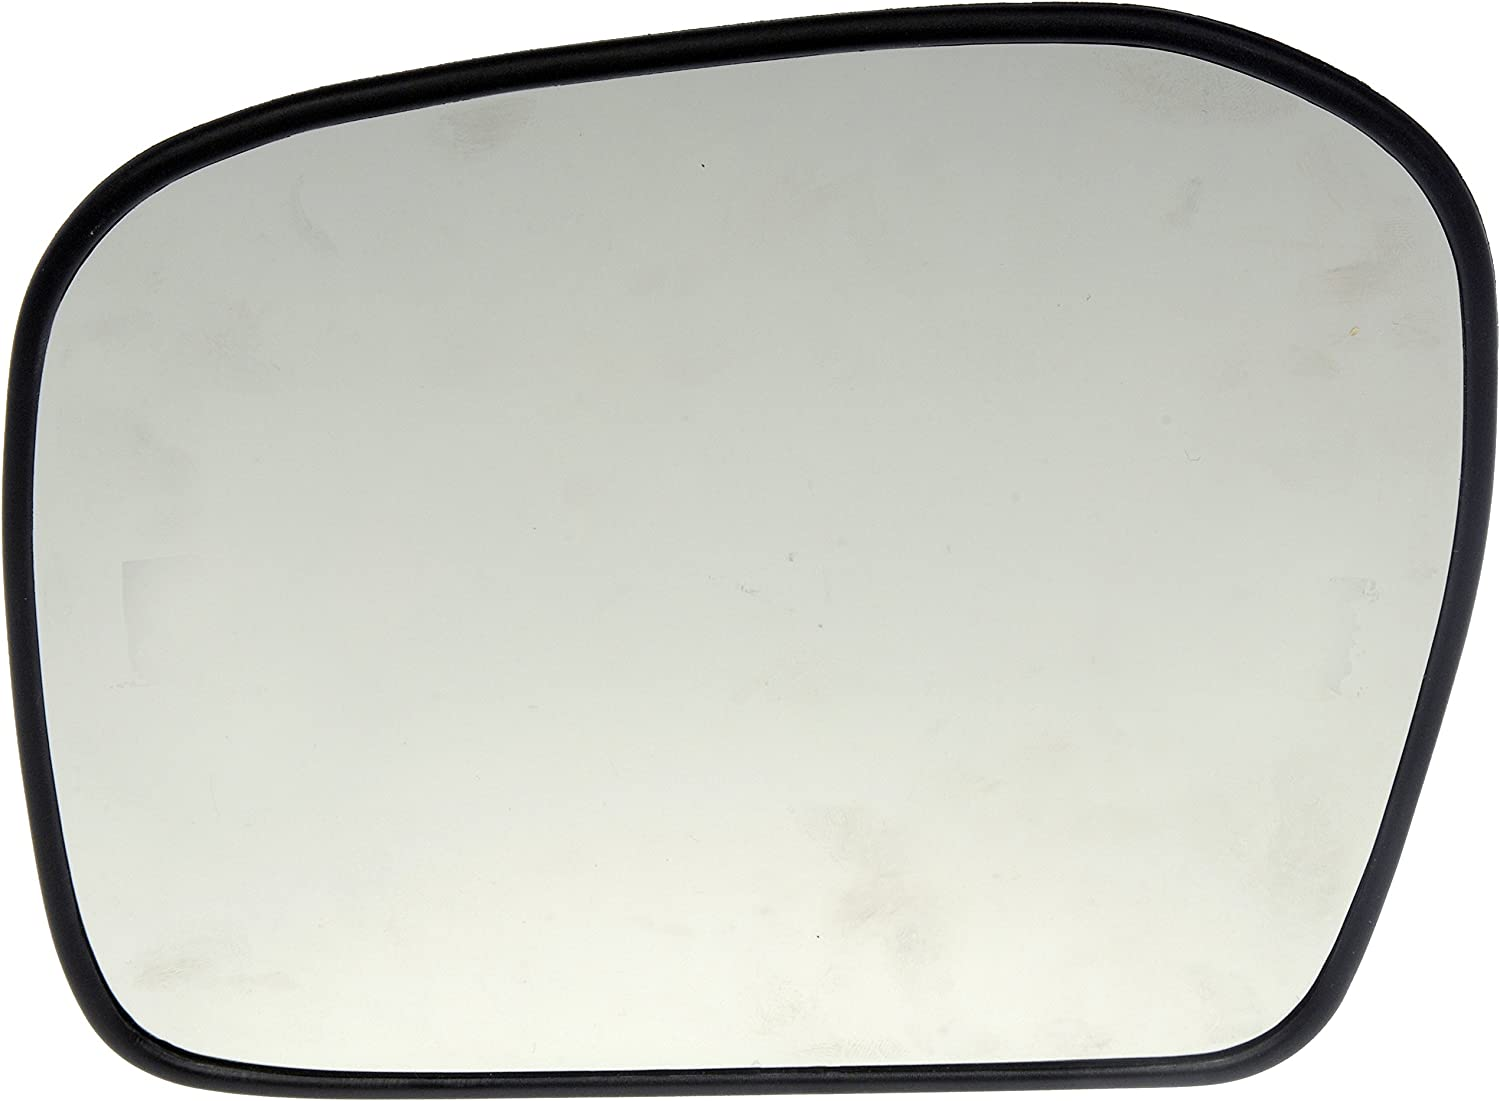 Dorman 56423 Driver Side Heated Limited price Door SEAL limited product Select for Glass Toy Mirror